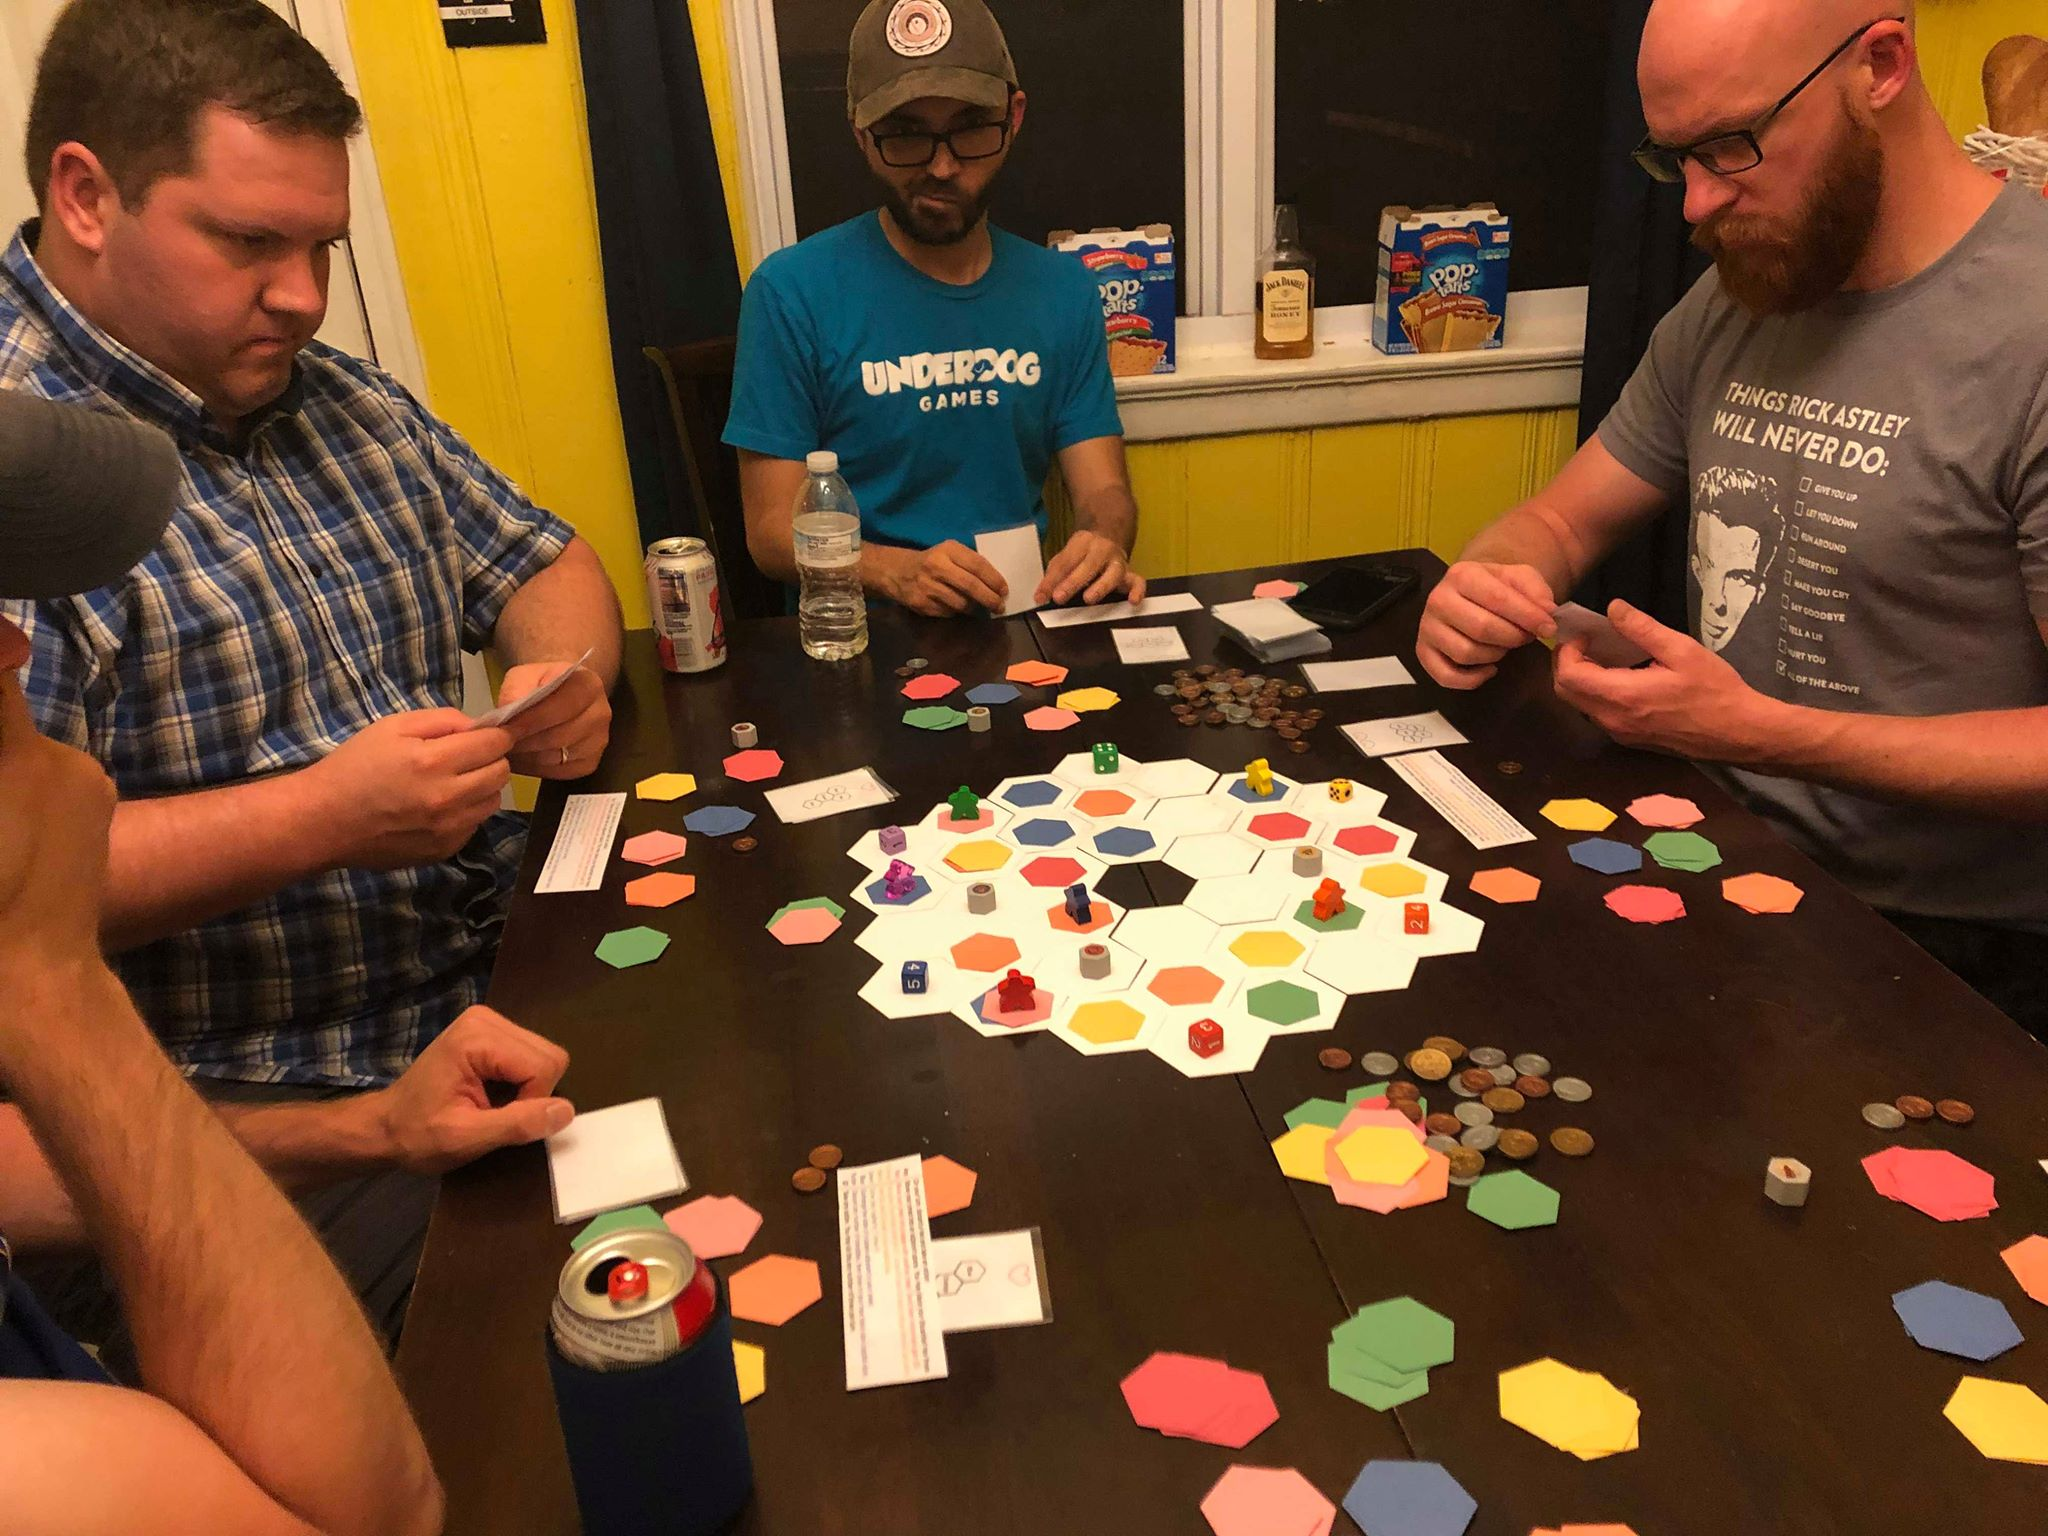 An updated version of Chromium, a gateway tile-laying game from Waitress Games co-founder JR Honeycutt